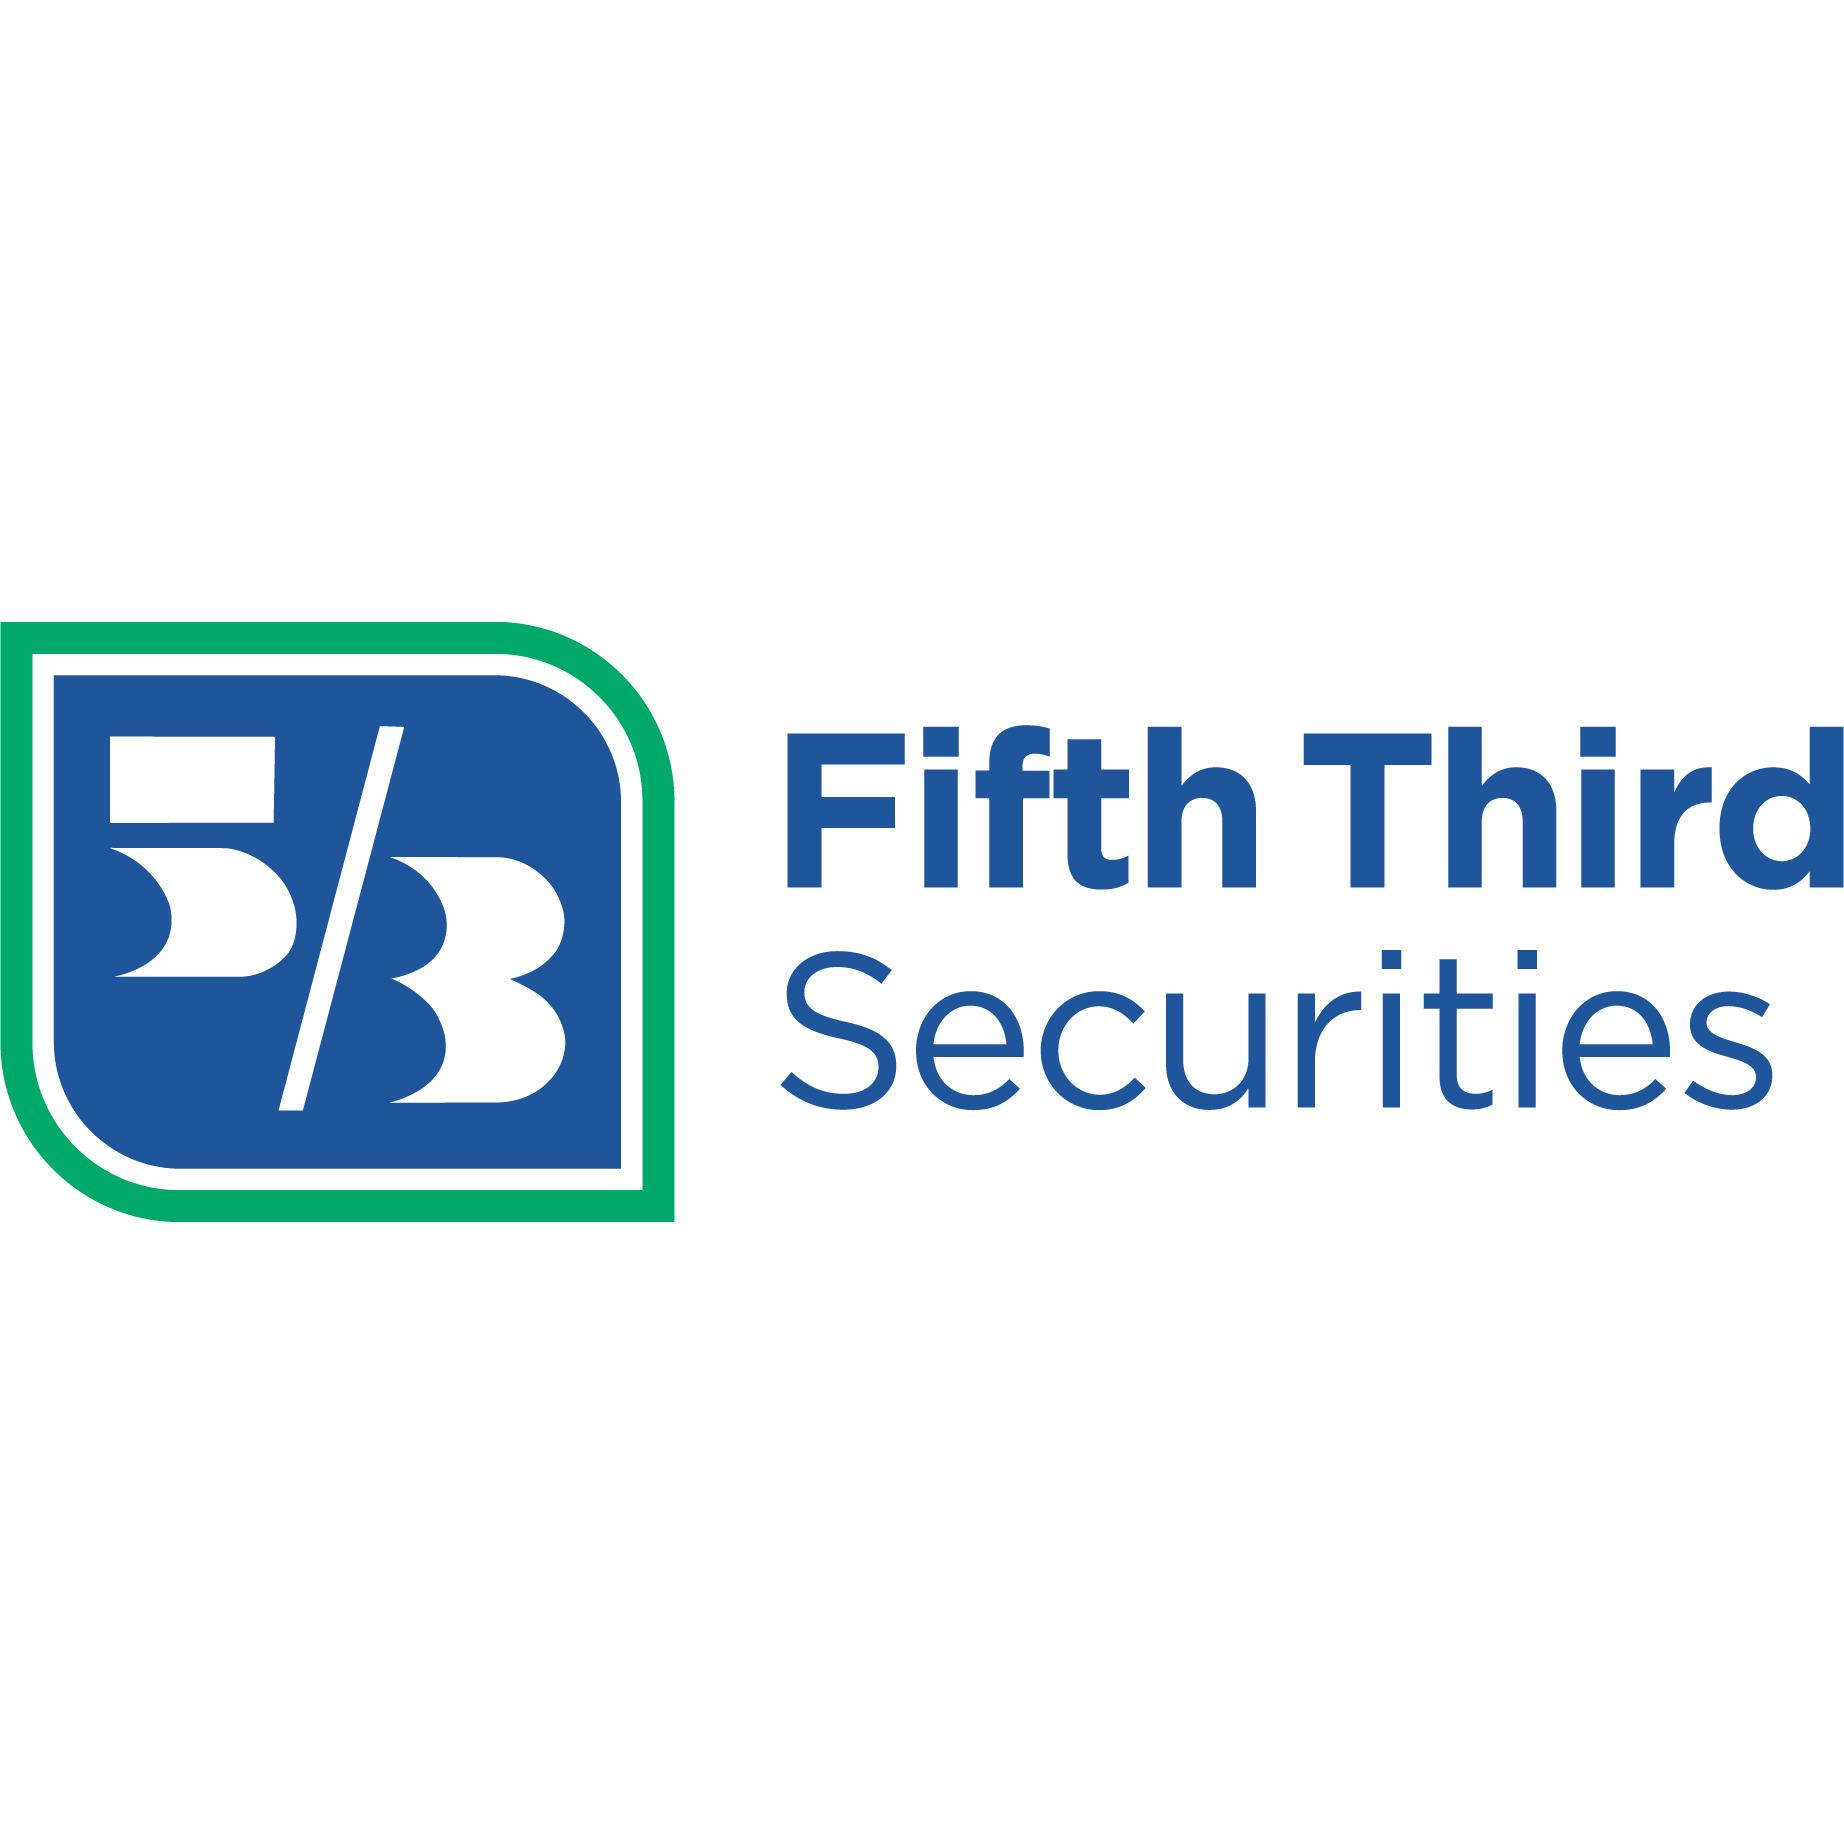 Fifth Third Securities - Joseph Sherburn